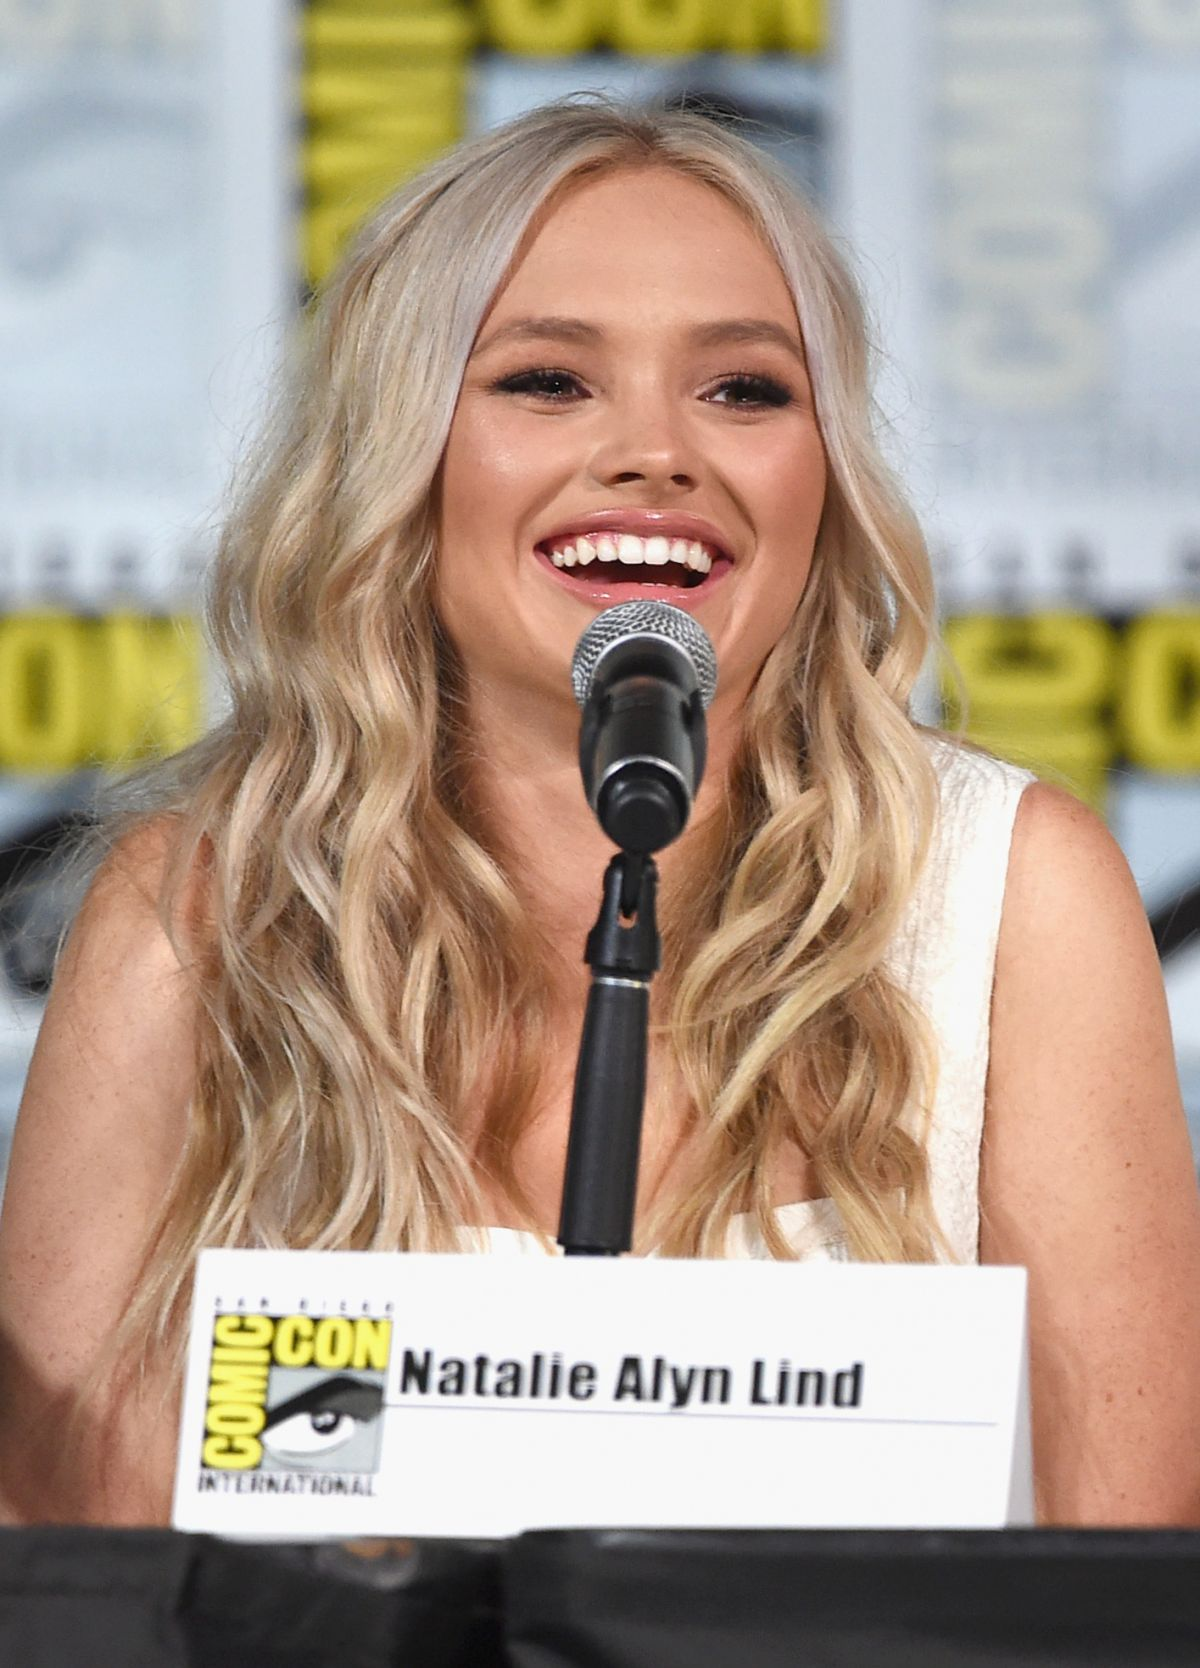 NATALIE ALYN LIND at The Gifted Panel at Comic-con in San Diego 07/21/2017